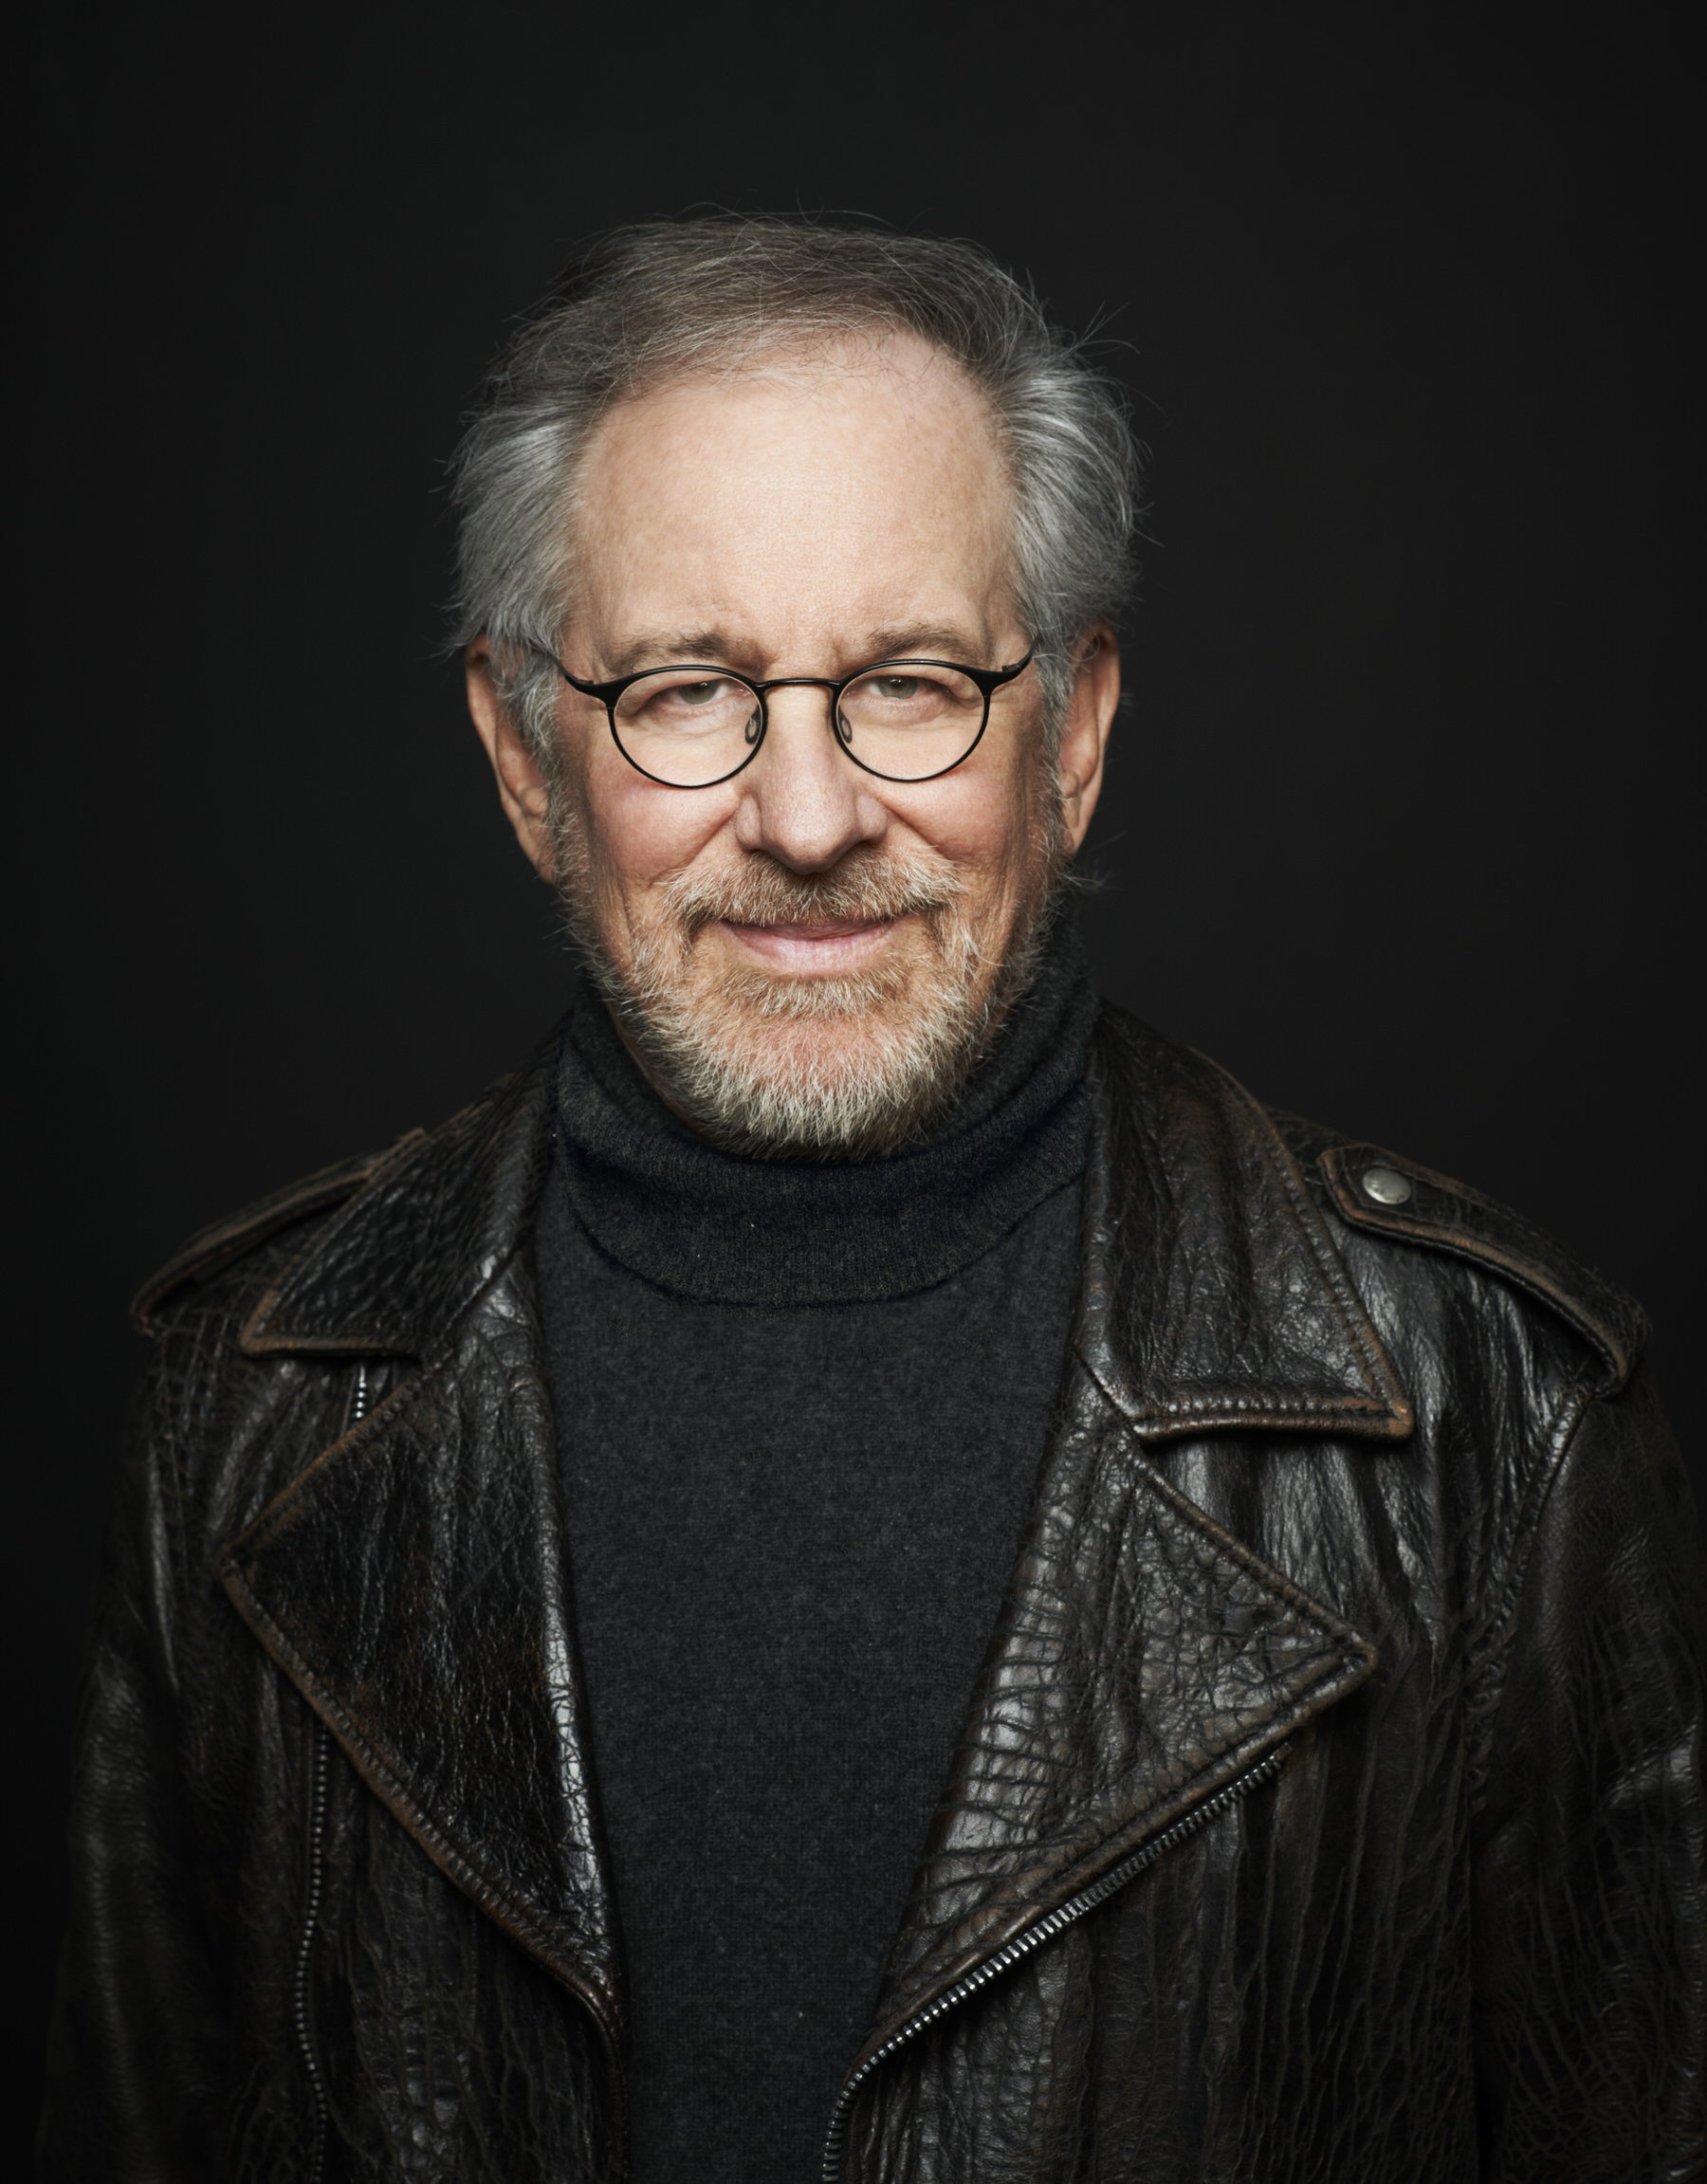 Steven Spielberg Named Harvard S 2016 Commencement Speaker